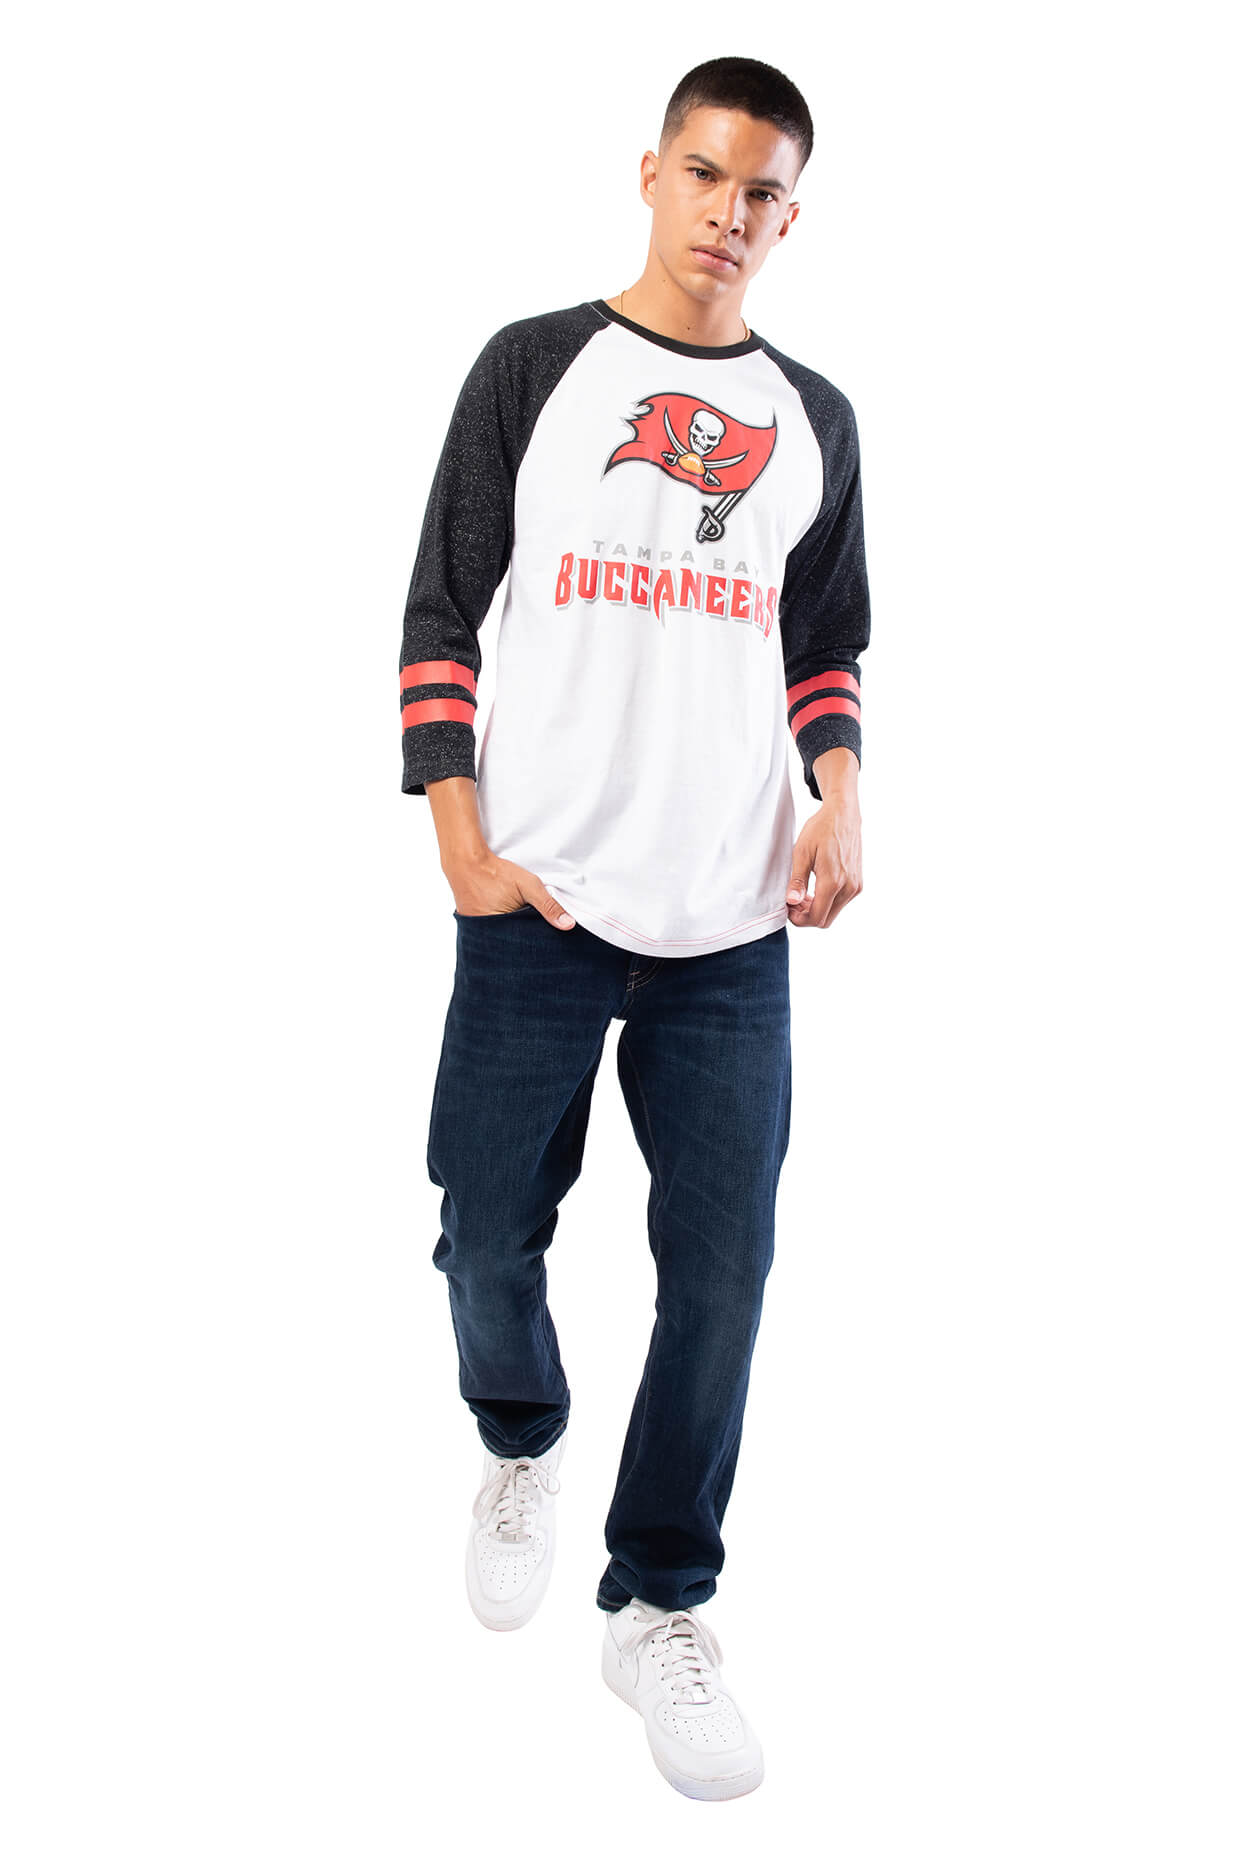 NFL Tampa Bay Buccaneers Men's Baseball Tee|Tampa Bay Buccaneers